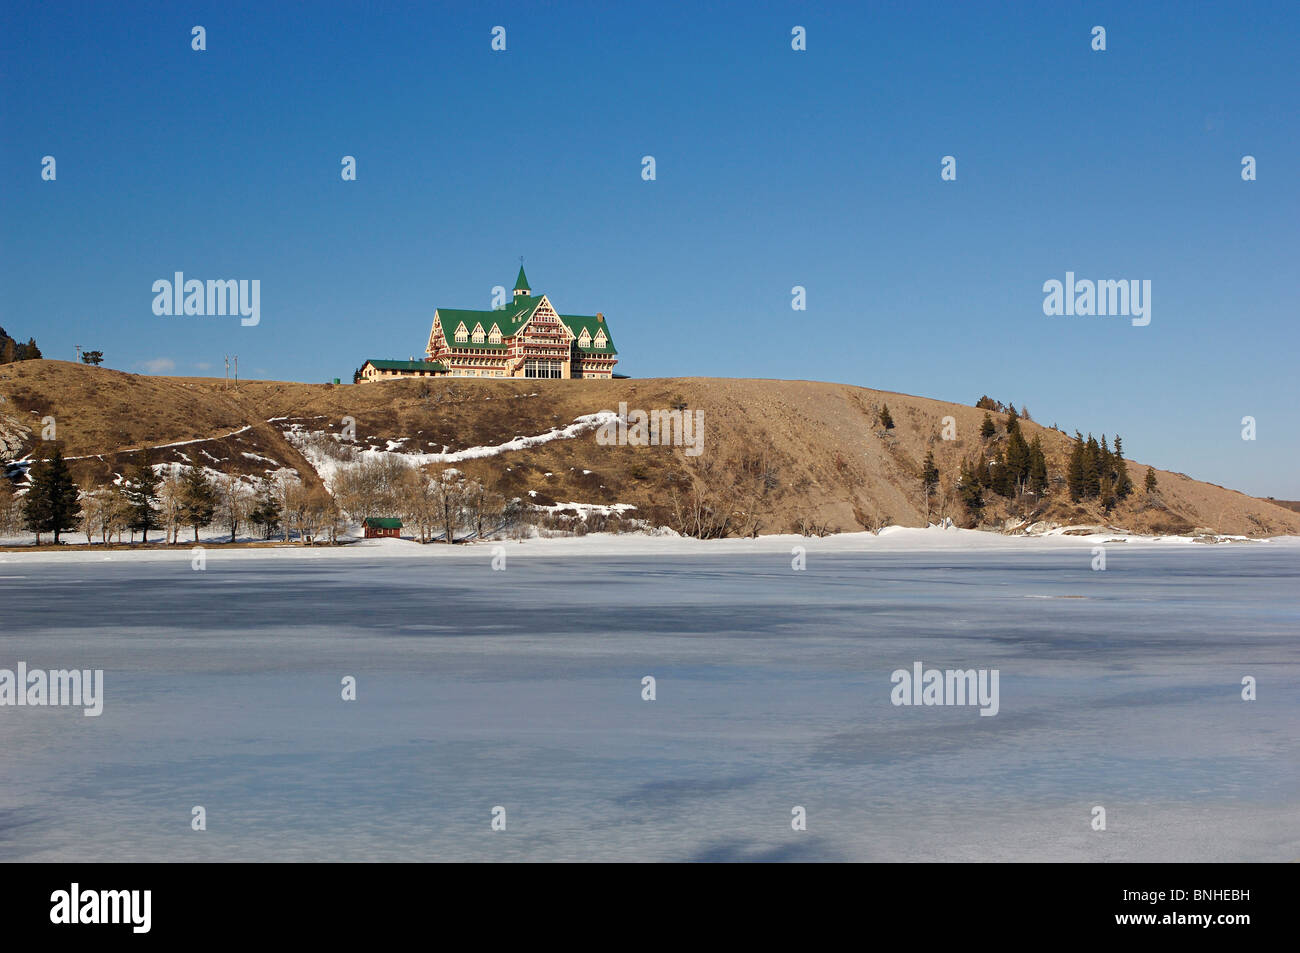 Canada Waterton Alberta Winter Prince Of Wales Hotel Waterton Lakes National Park Landscape Scenery Lake Snow Cold - Stock Image